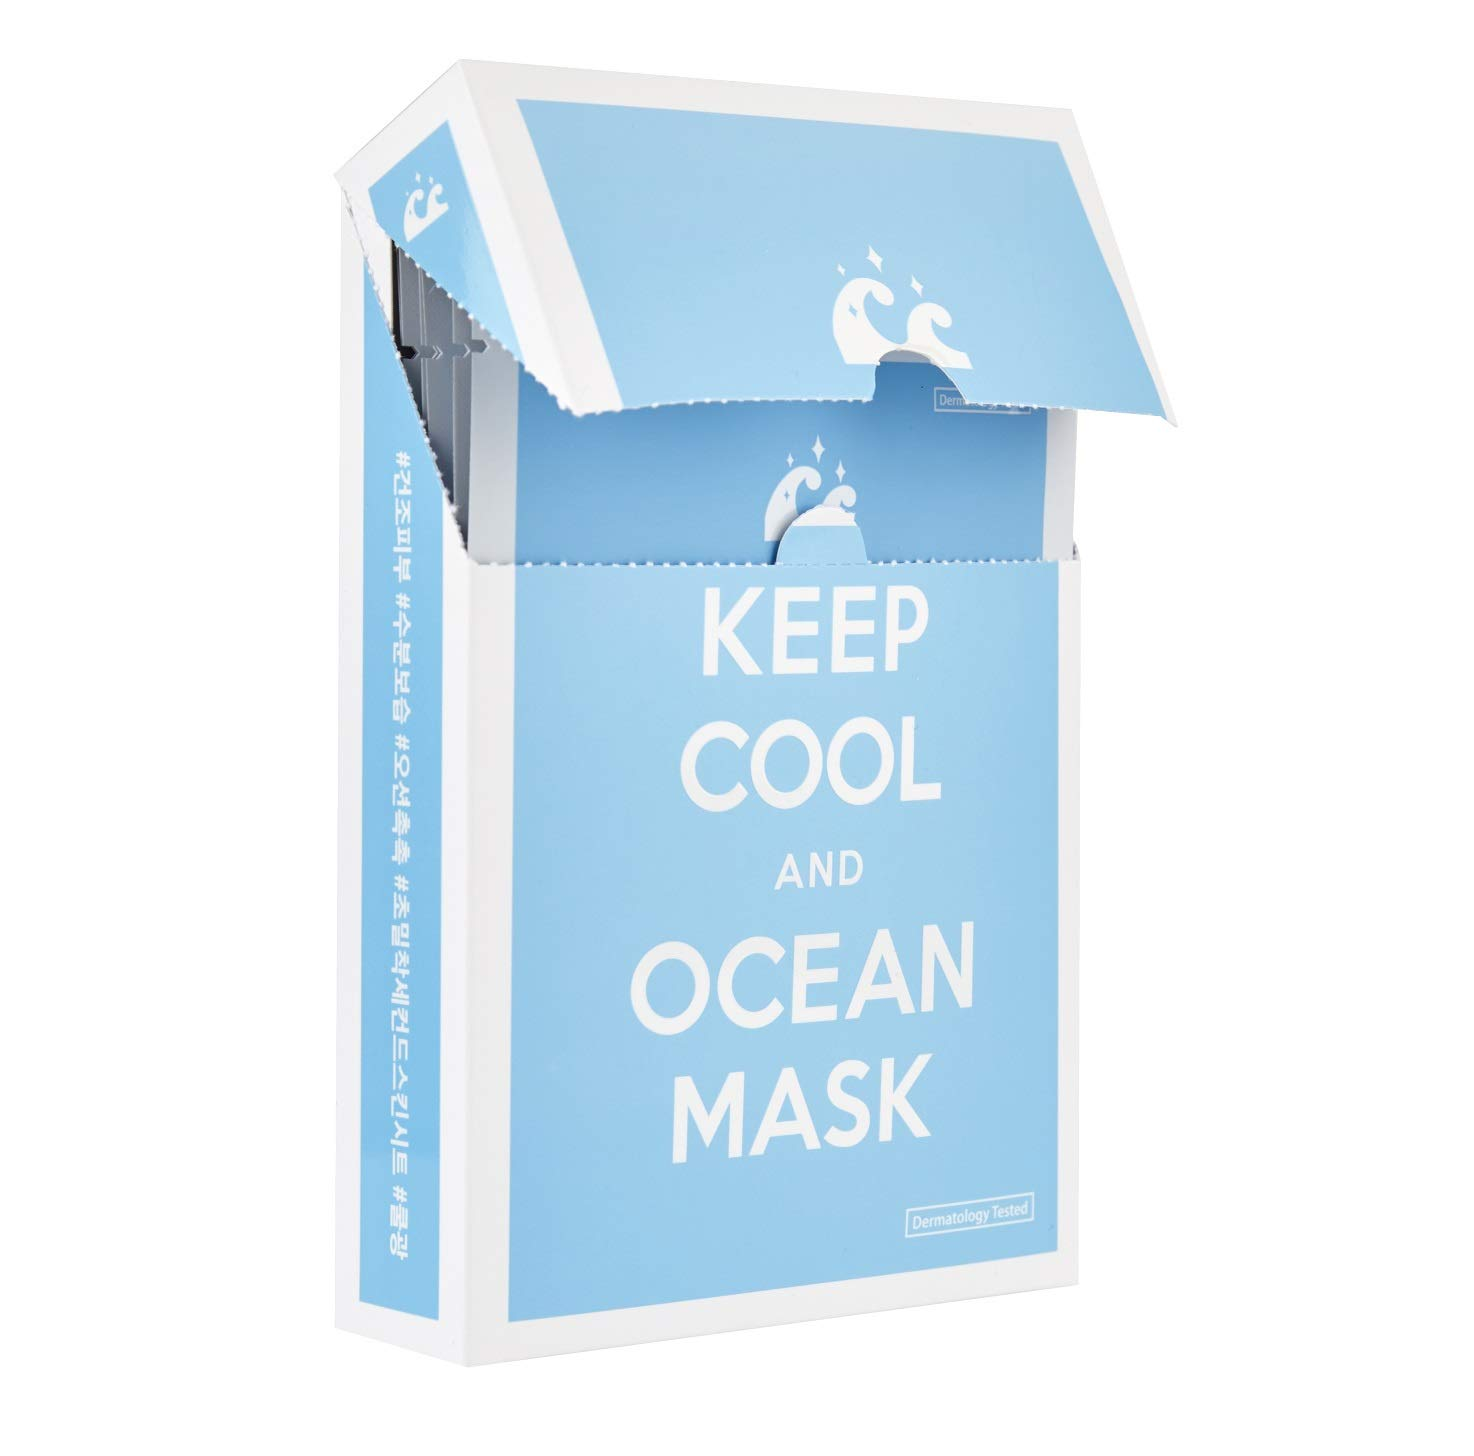 KEEP COOL Ocean Facial Mask Sheets (Box of 10) | Ultra-Hydrating & Anti-Wrinkle Sheet Mask for Dry, Dehydrated, and Sensitive Skin Types | Hypoallergenic, Dermatologist Tested